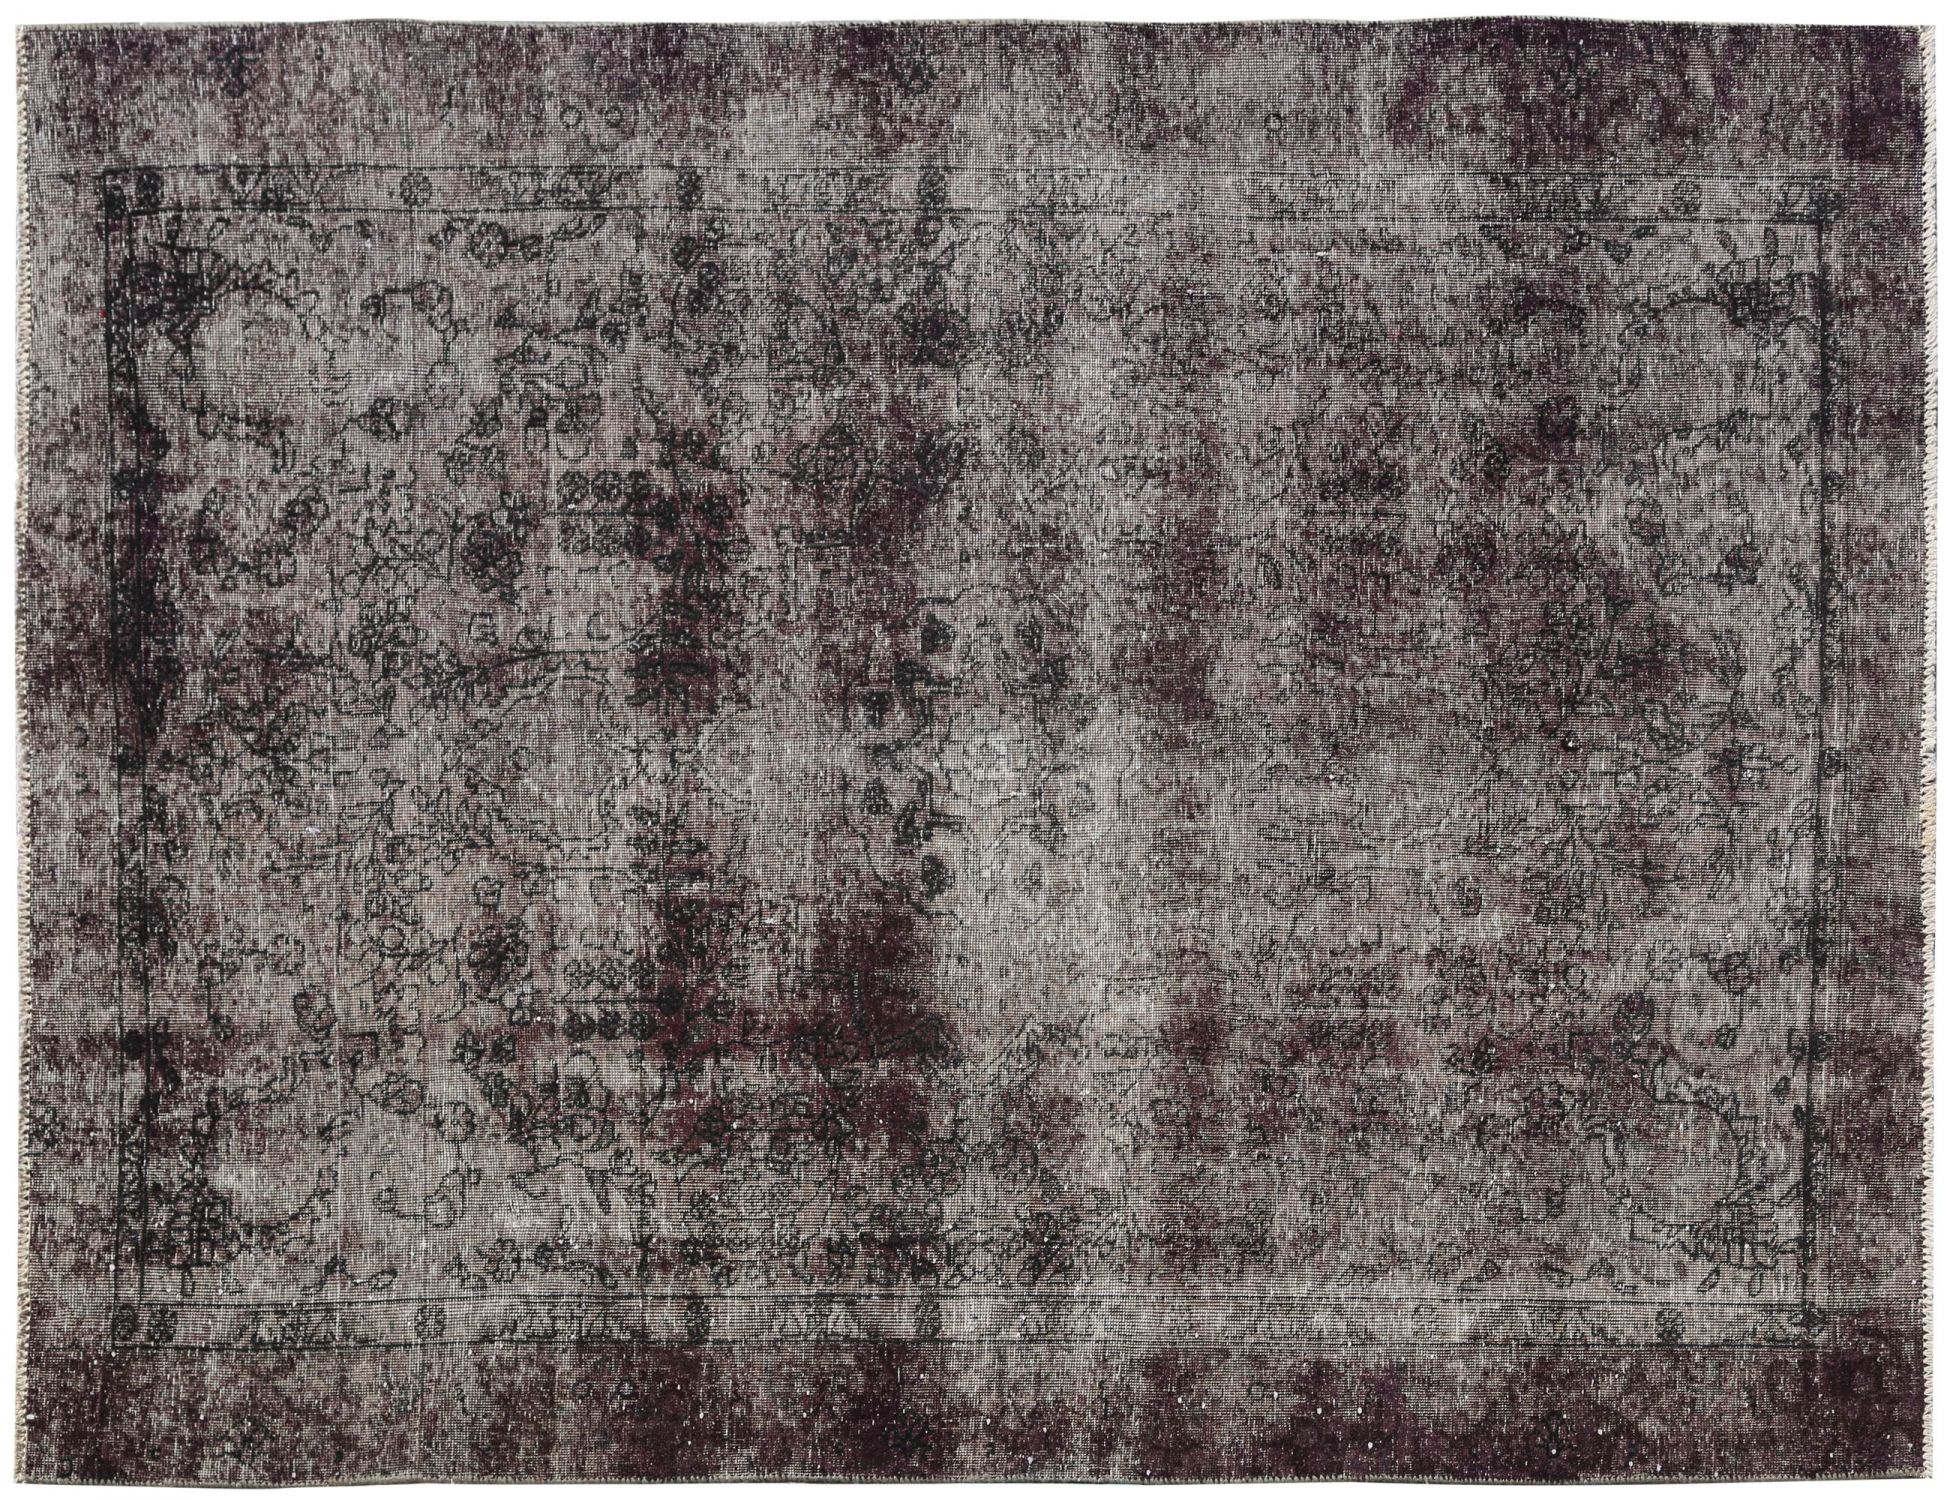 Vintage Carpet  black <br/>277 x 190 cm